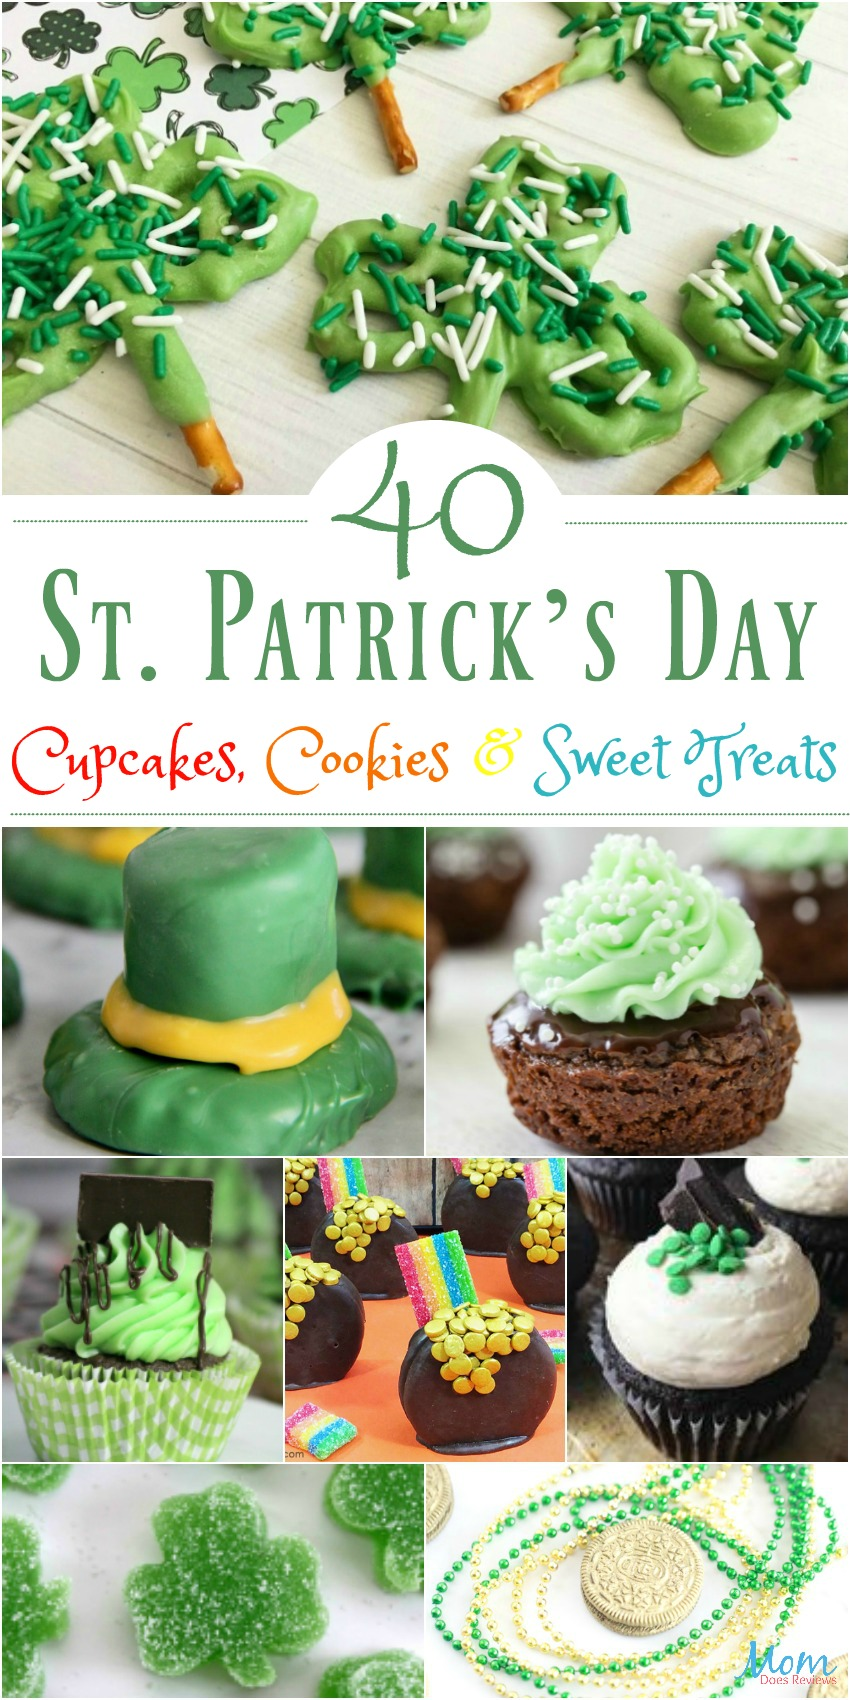 40 St. Patrick's Day Cupcakes, Cookies & Sweet Treats for a Fun Celebration #cupcakes #cookies #sweets #stpattysday #stpatricksday